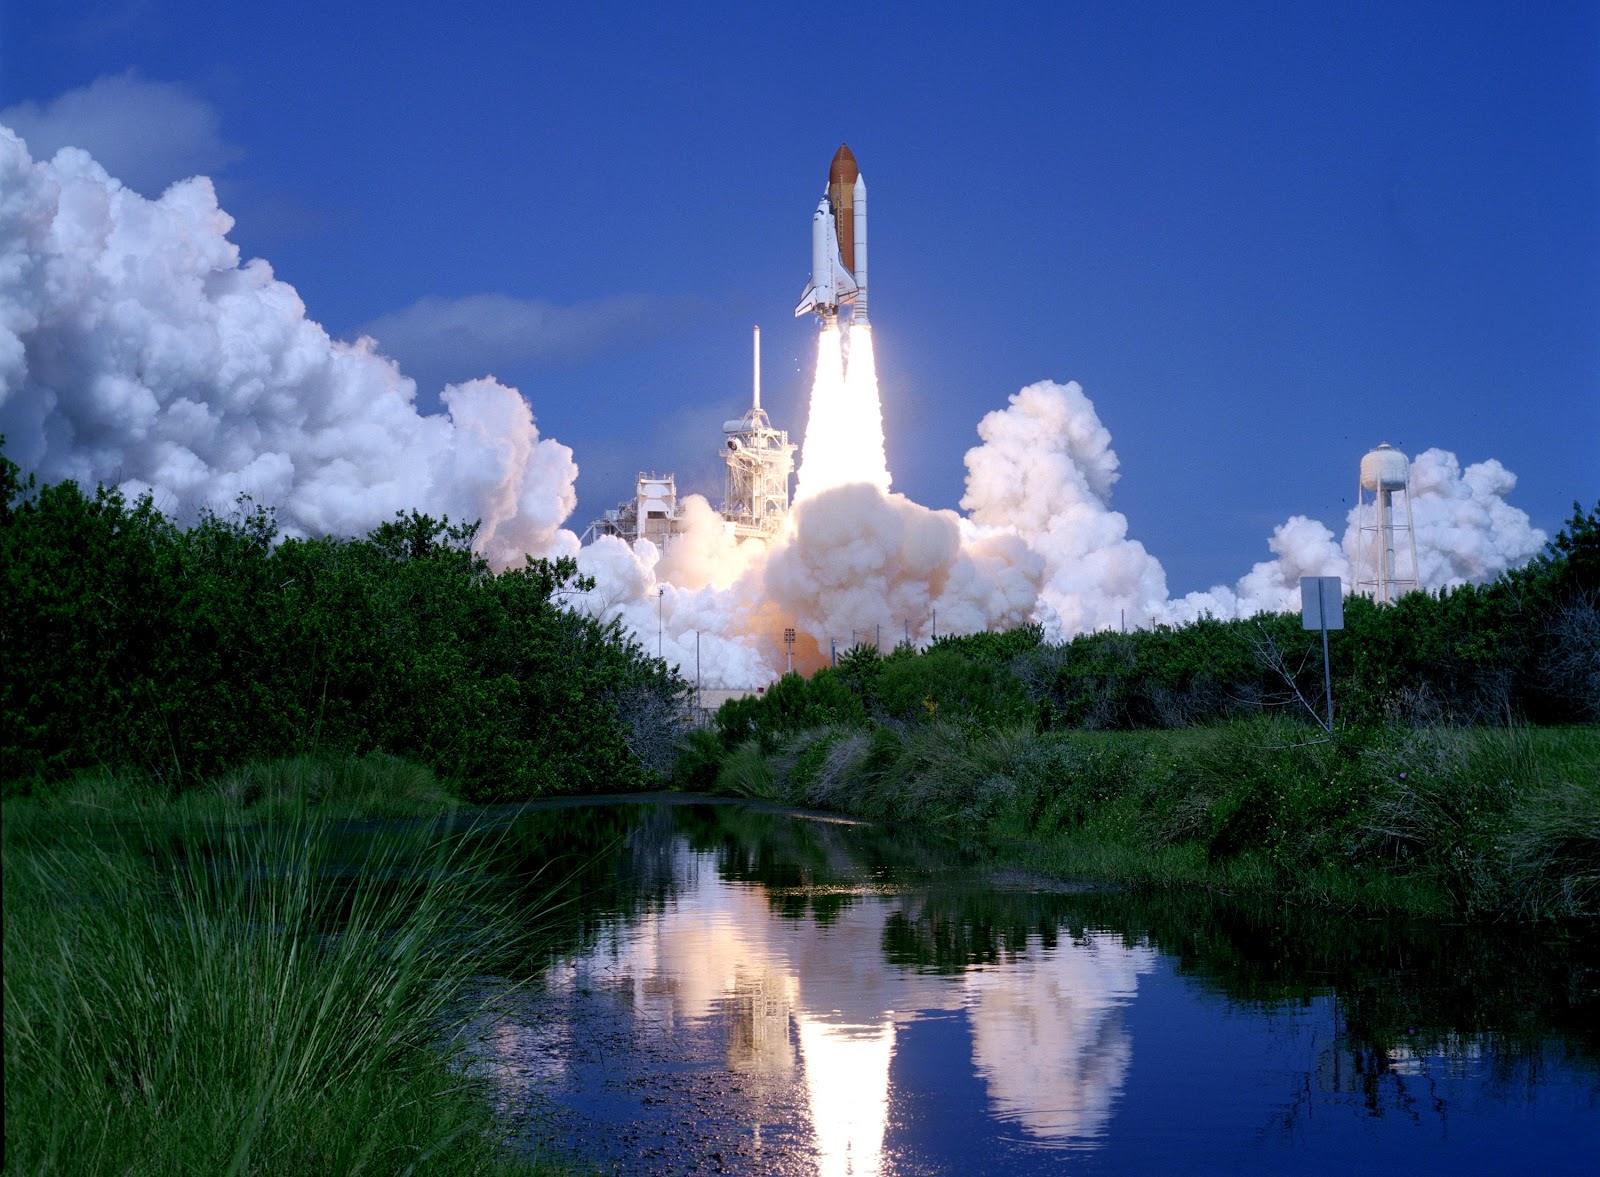 Tranquility Base: Making space travel a little safer